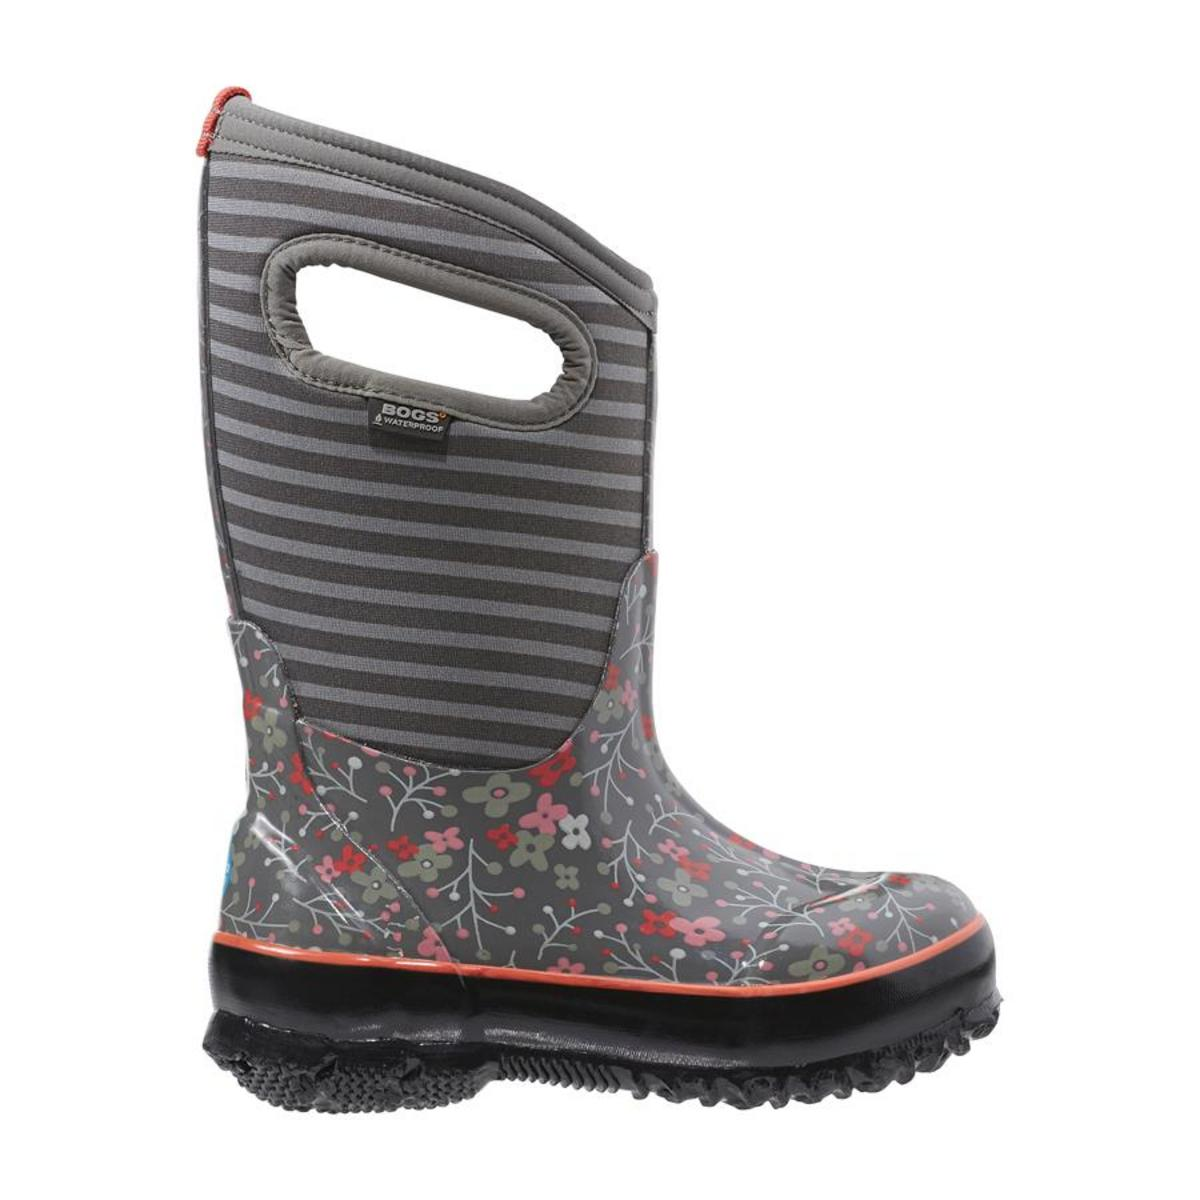 Wenger Yeti Snow Boots - Waterproof Insulated (for Women ...